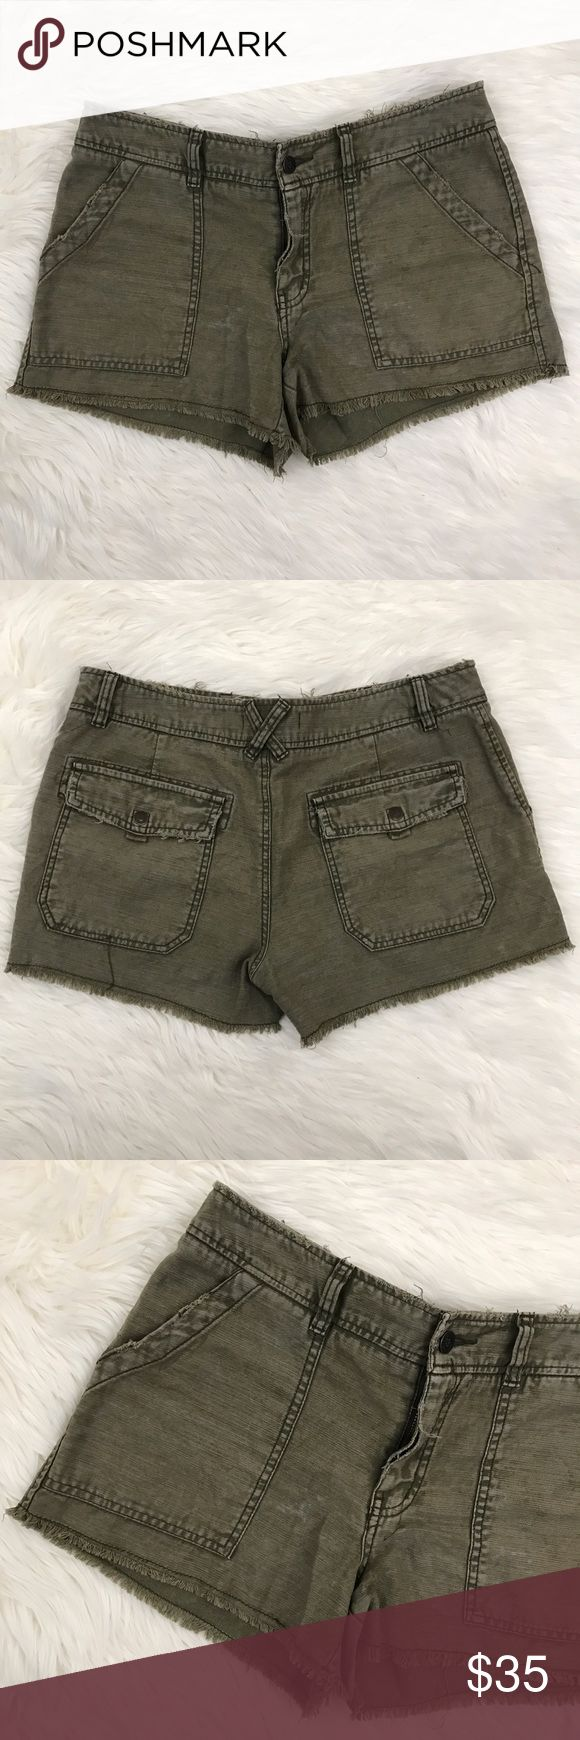 Sale! Free People Olive Green Cutoff Cargo Shorts Free People olive green utility cutoff shorts with factory distressed material. Chino style pocket detail, zipper front. Waist: 32 inches Inseam: 3 inches Free People Shorts